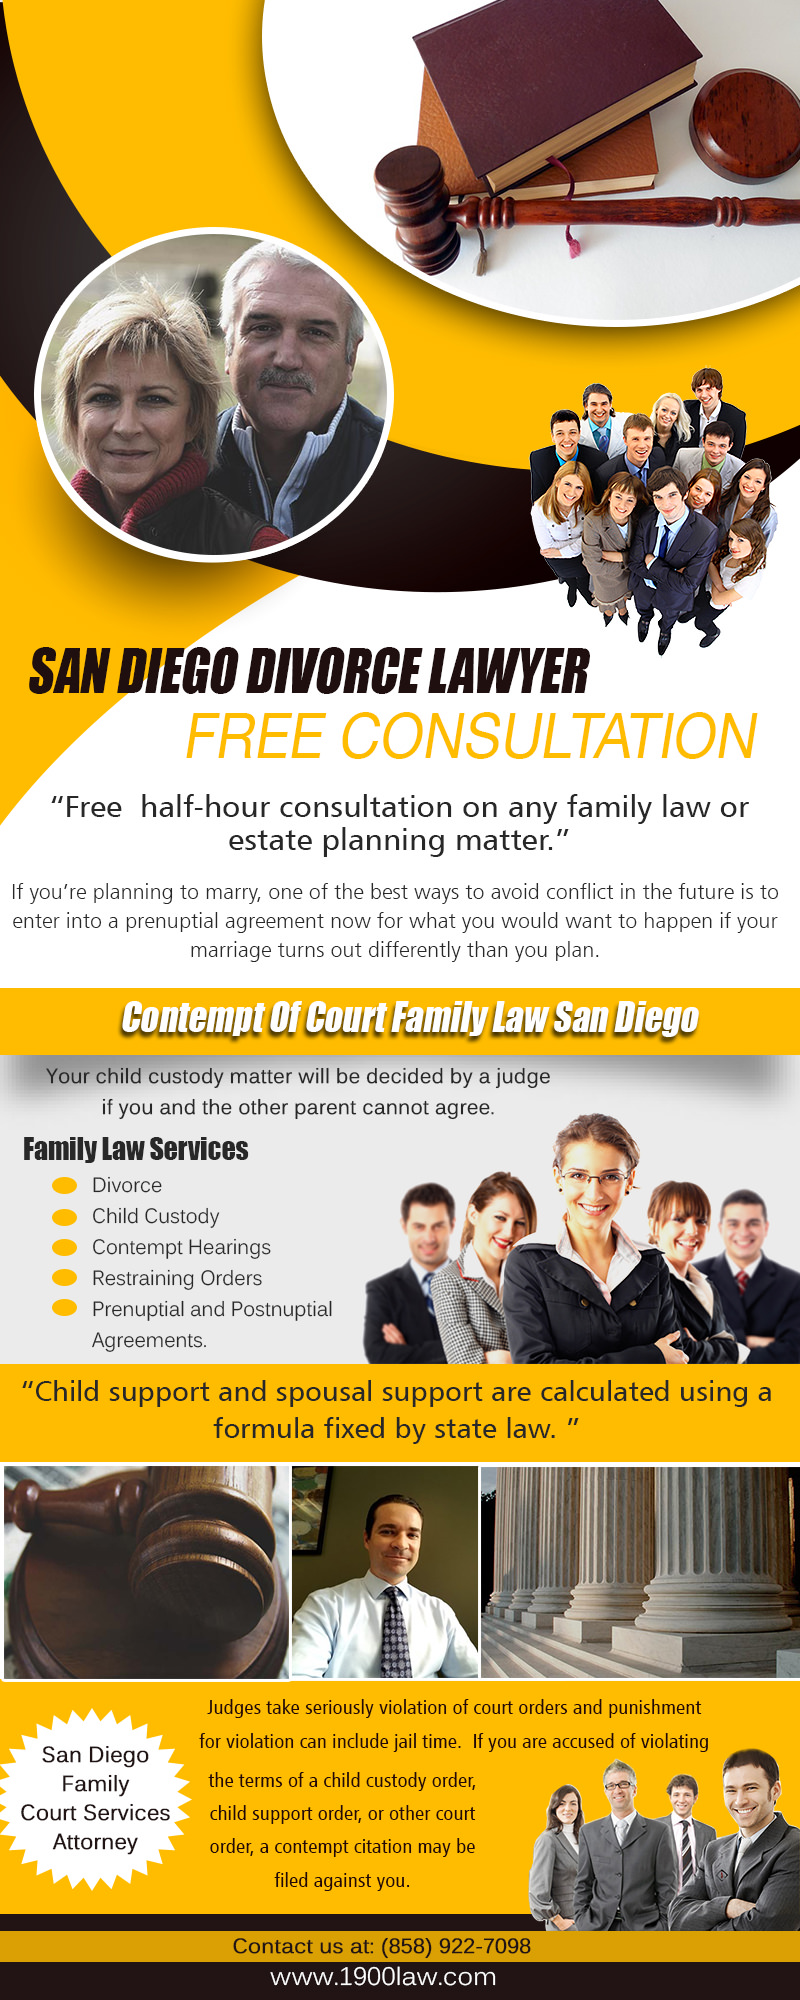 San Diego Divorce Lawyers Free Consultation -858-922-7098